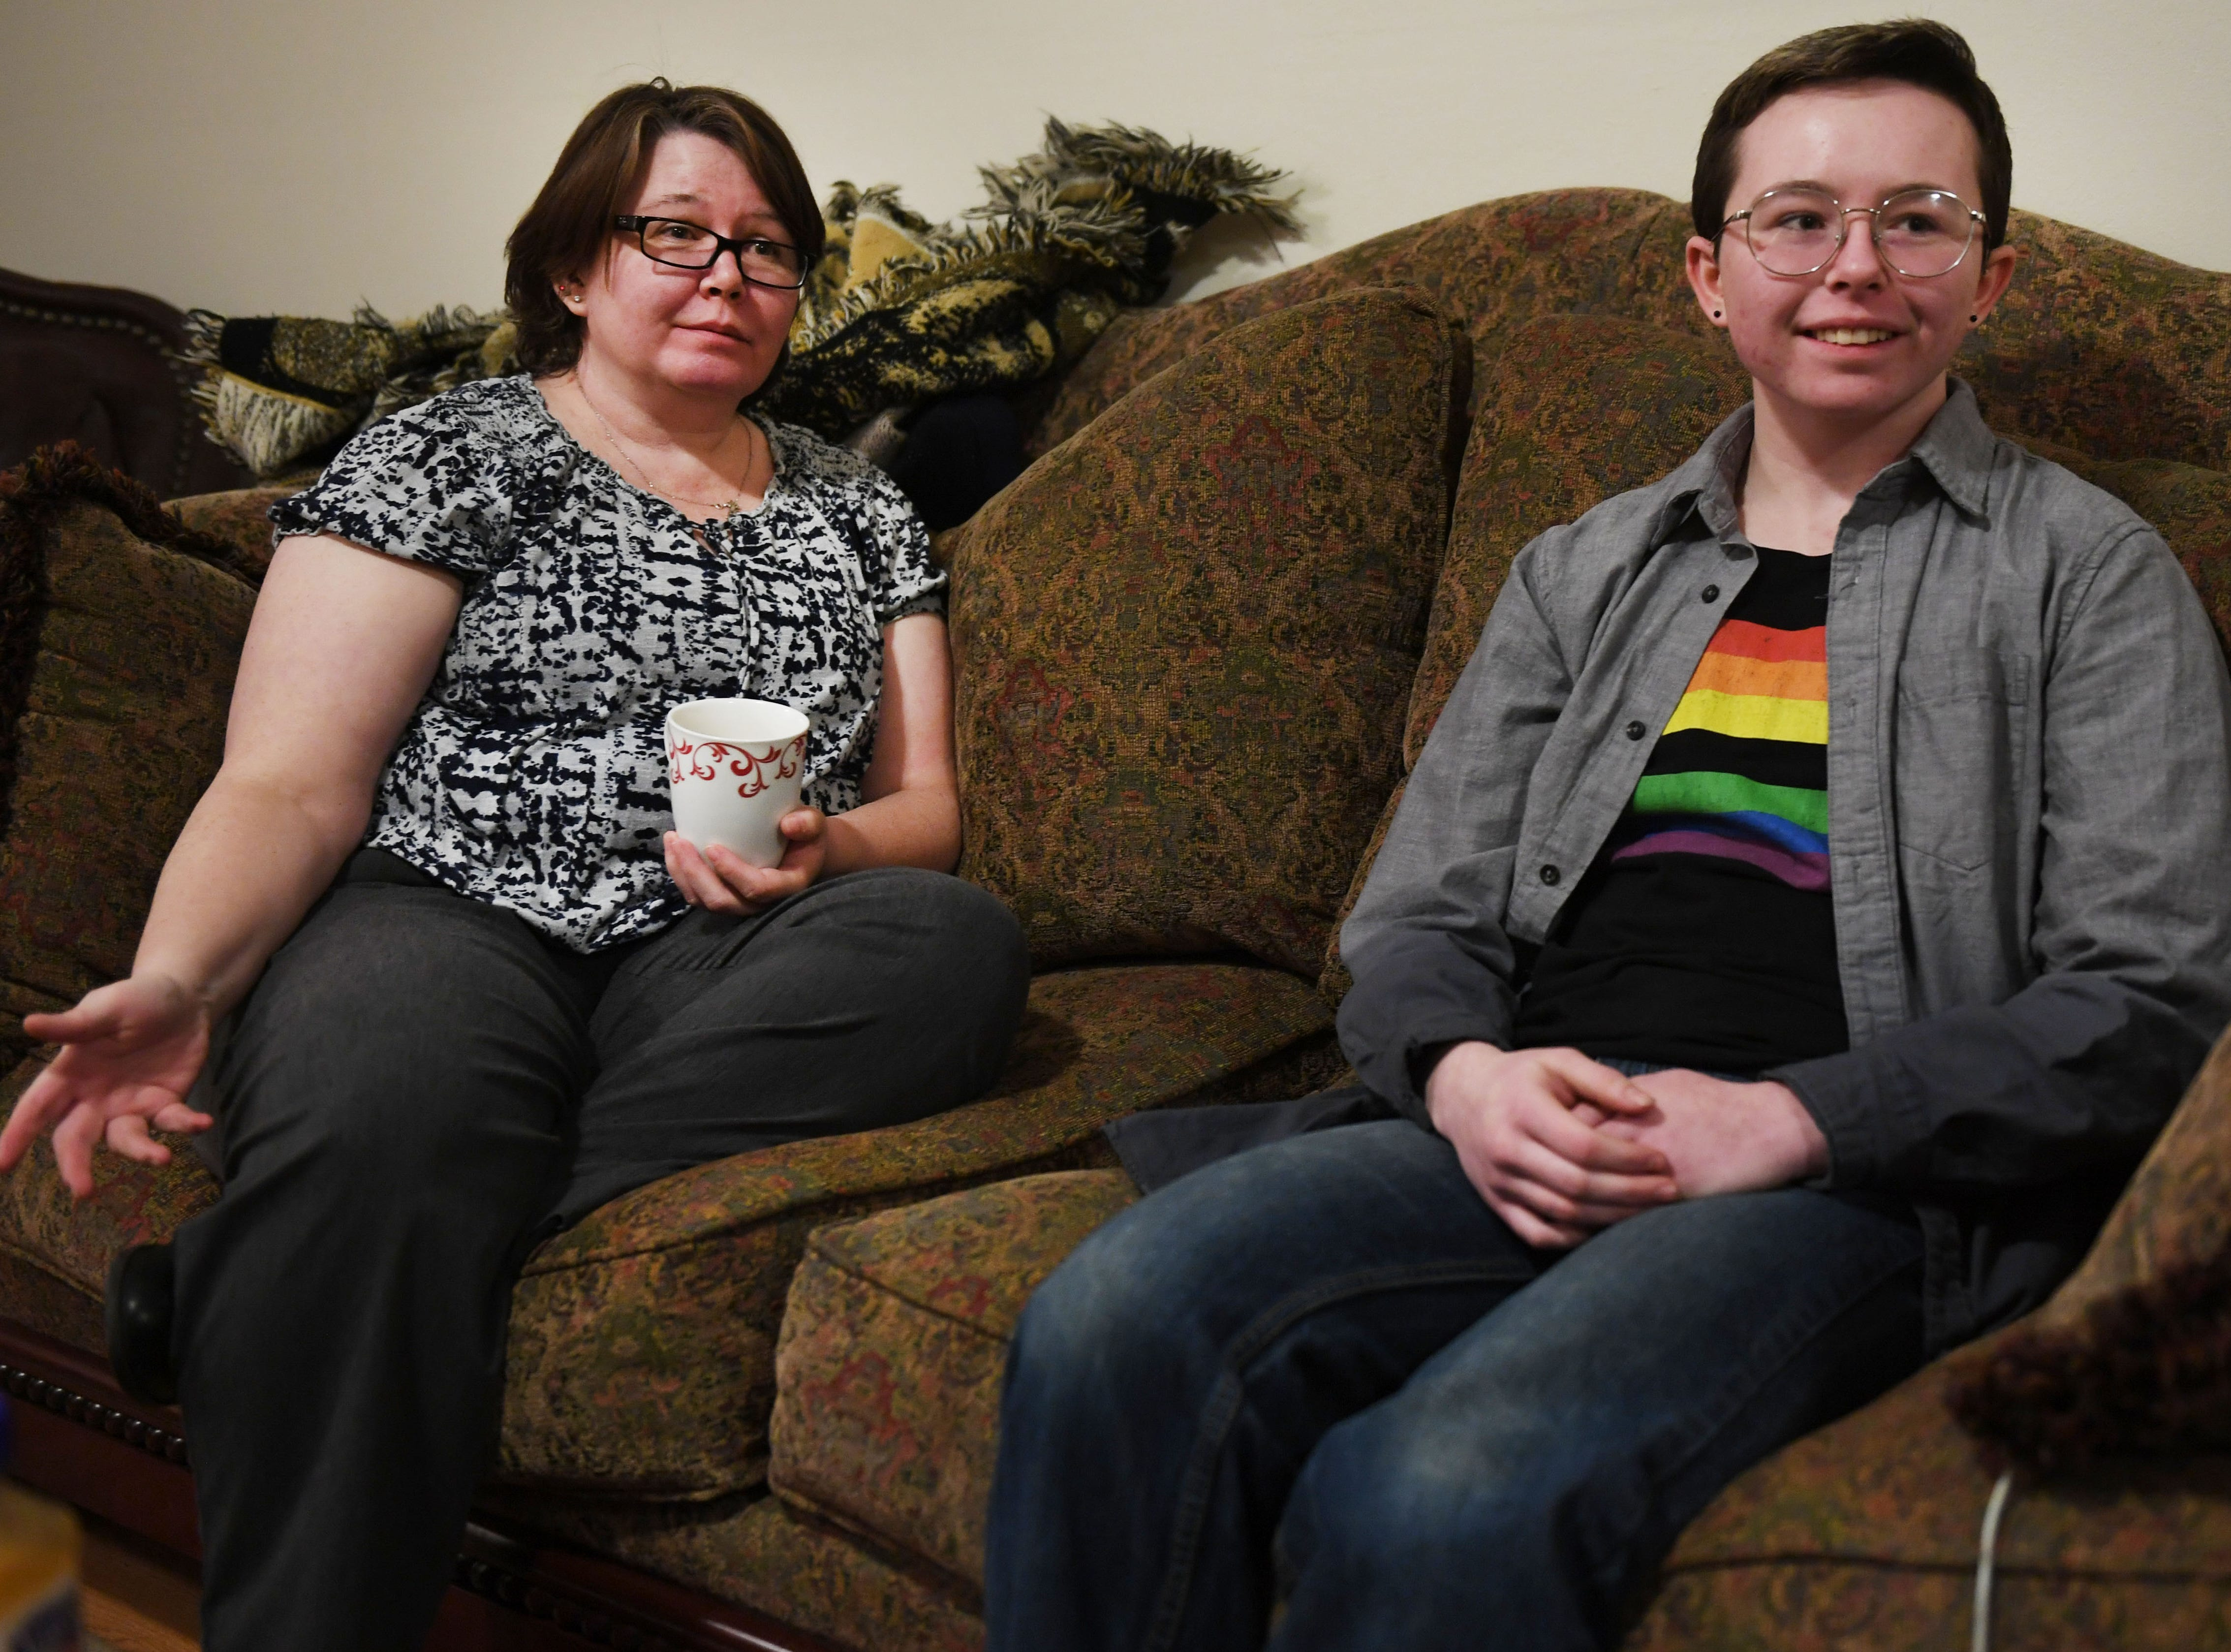 Jessica Martin and her son Oliver Dickman talk on Monday, Feb. 25, in  Yankton about Oliver's experience transitioning.